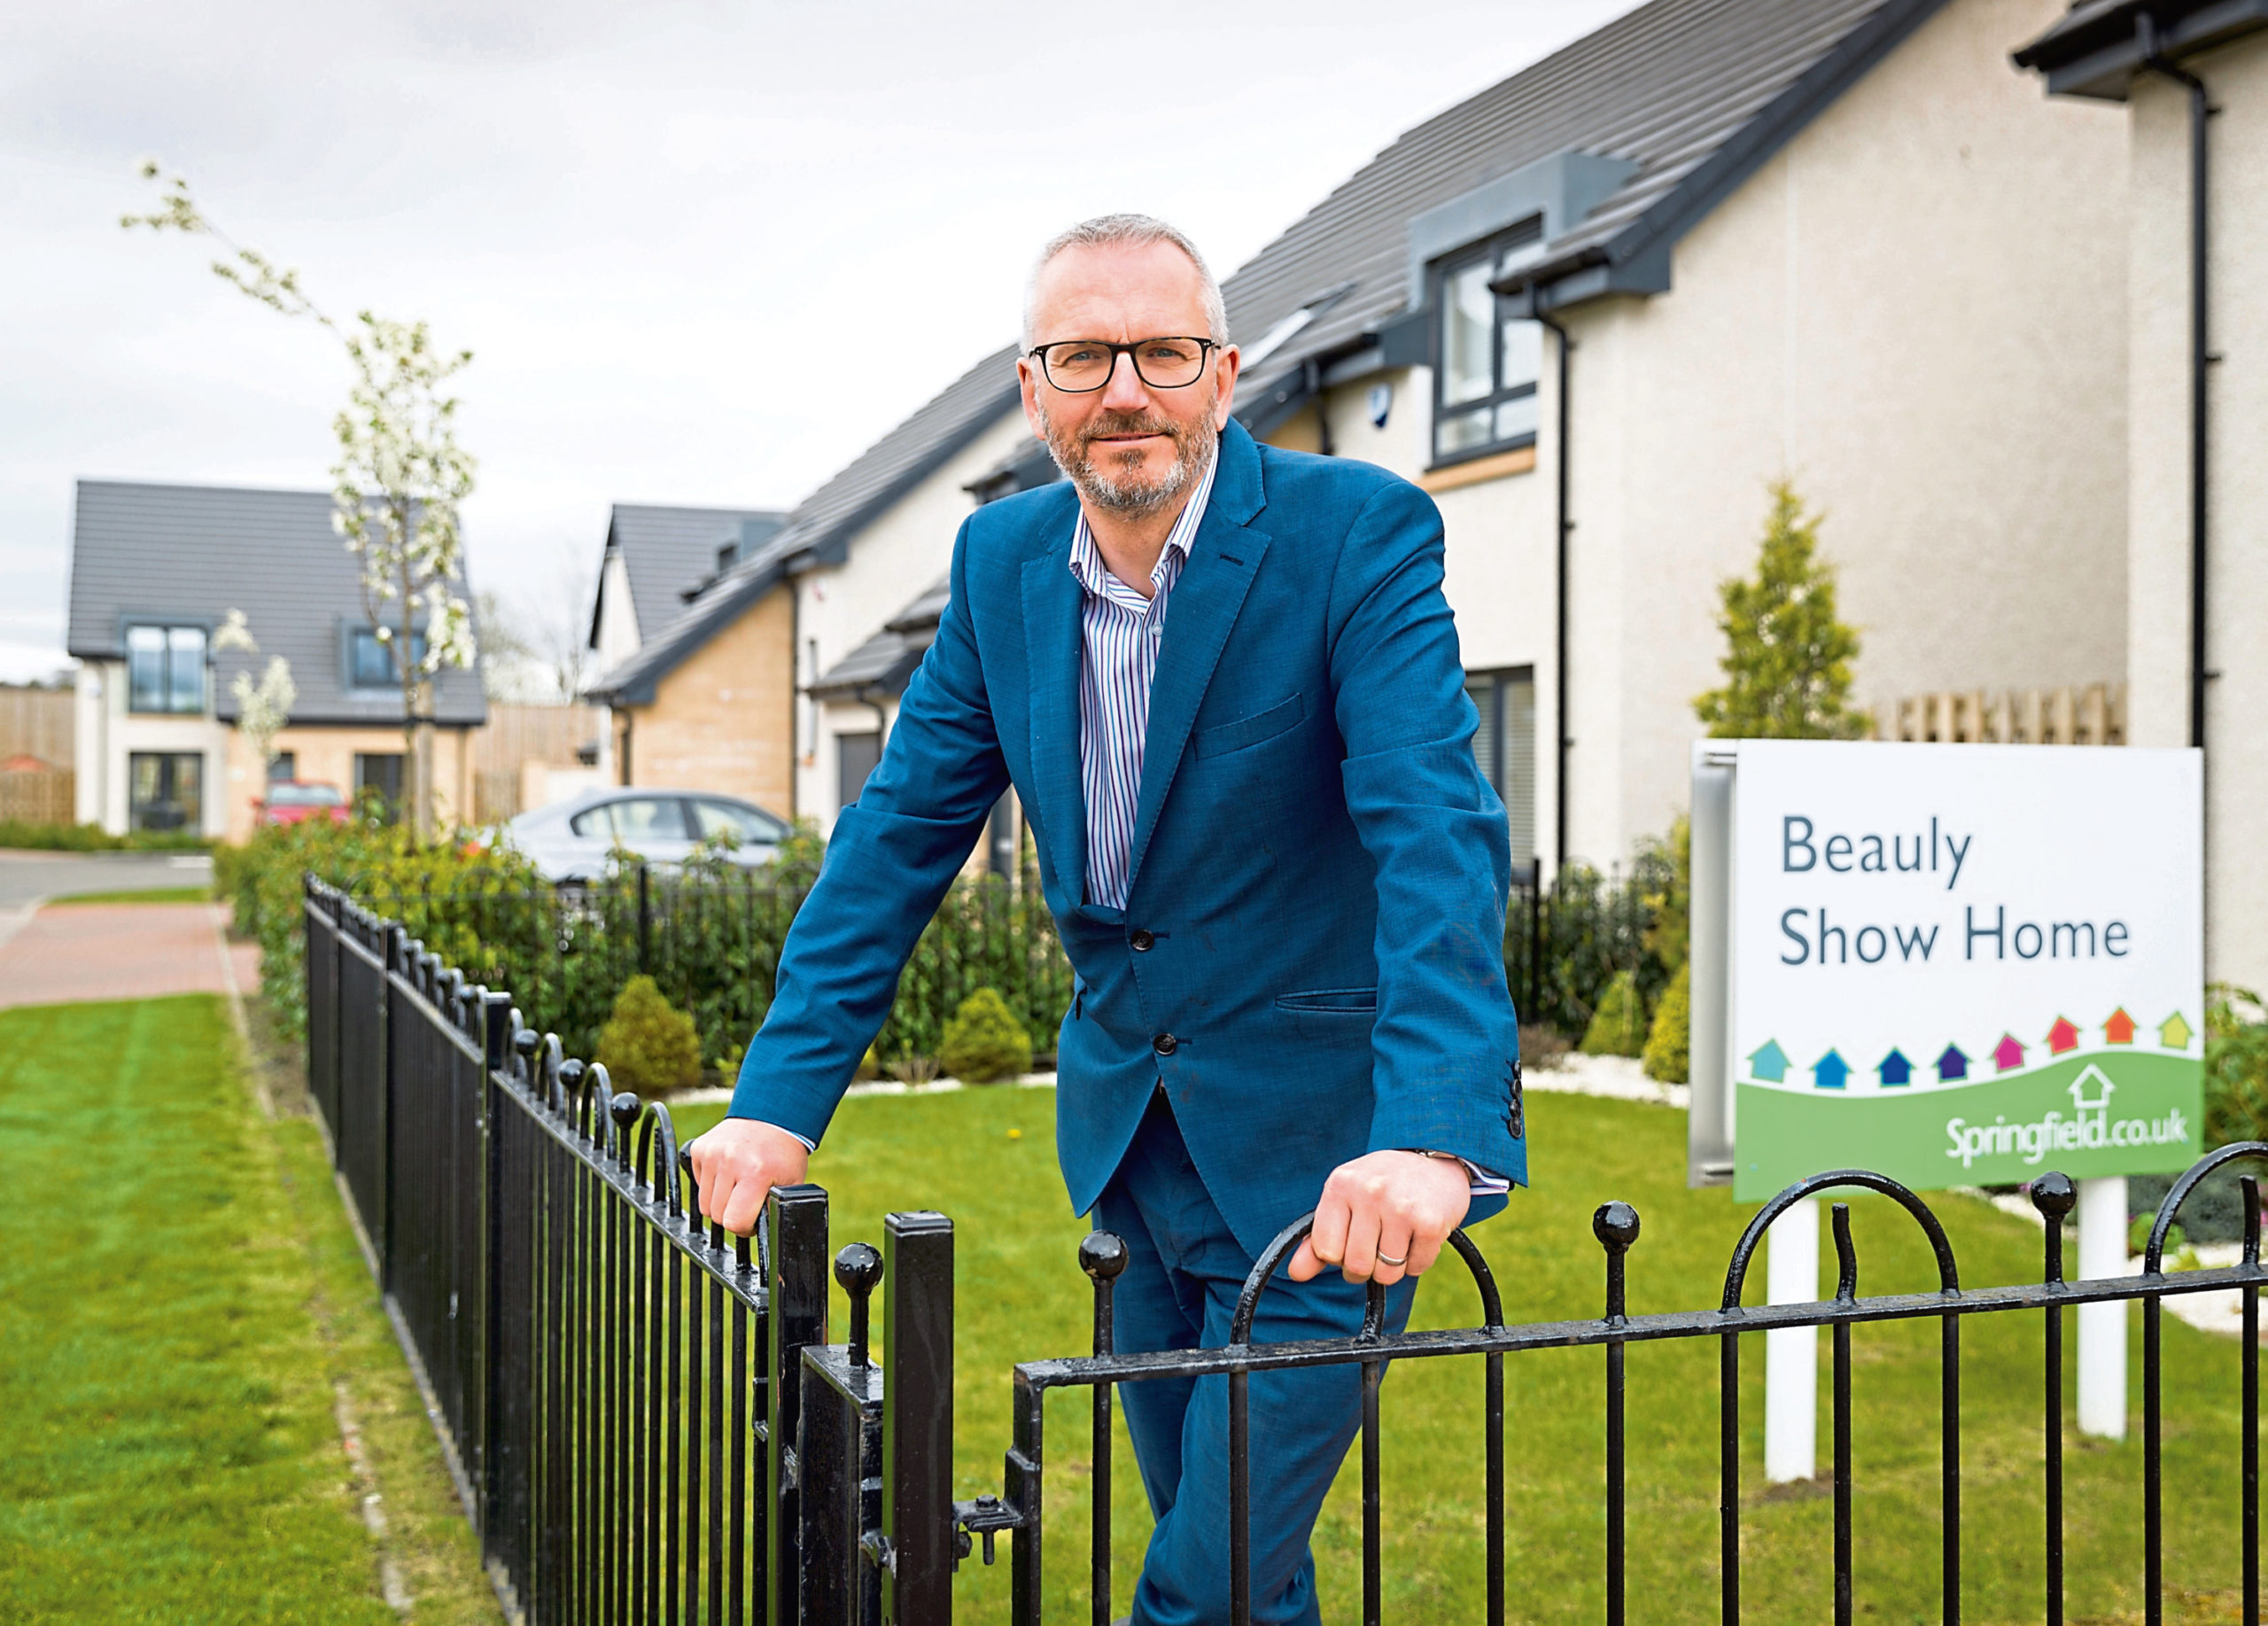 Springfield Homes Managing Director Innes Smith